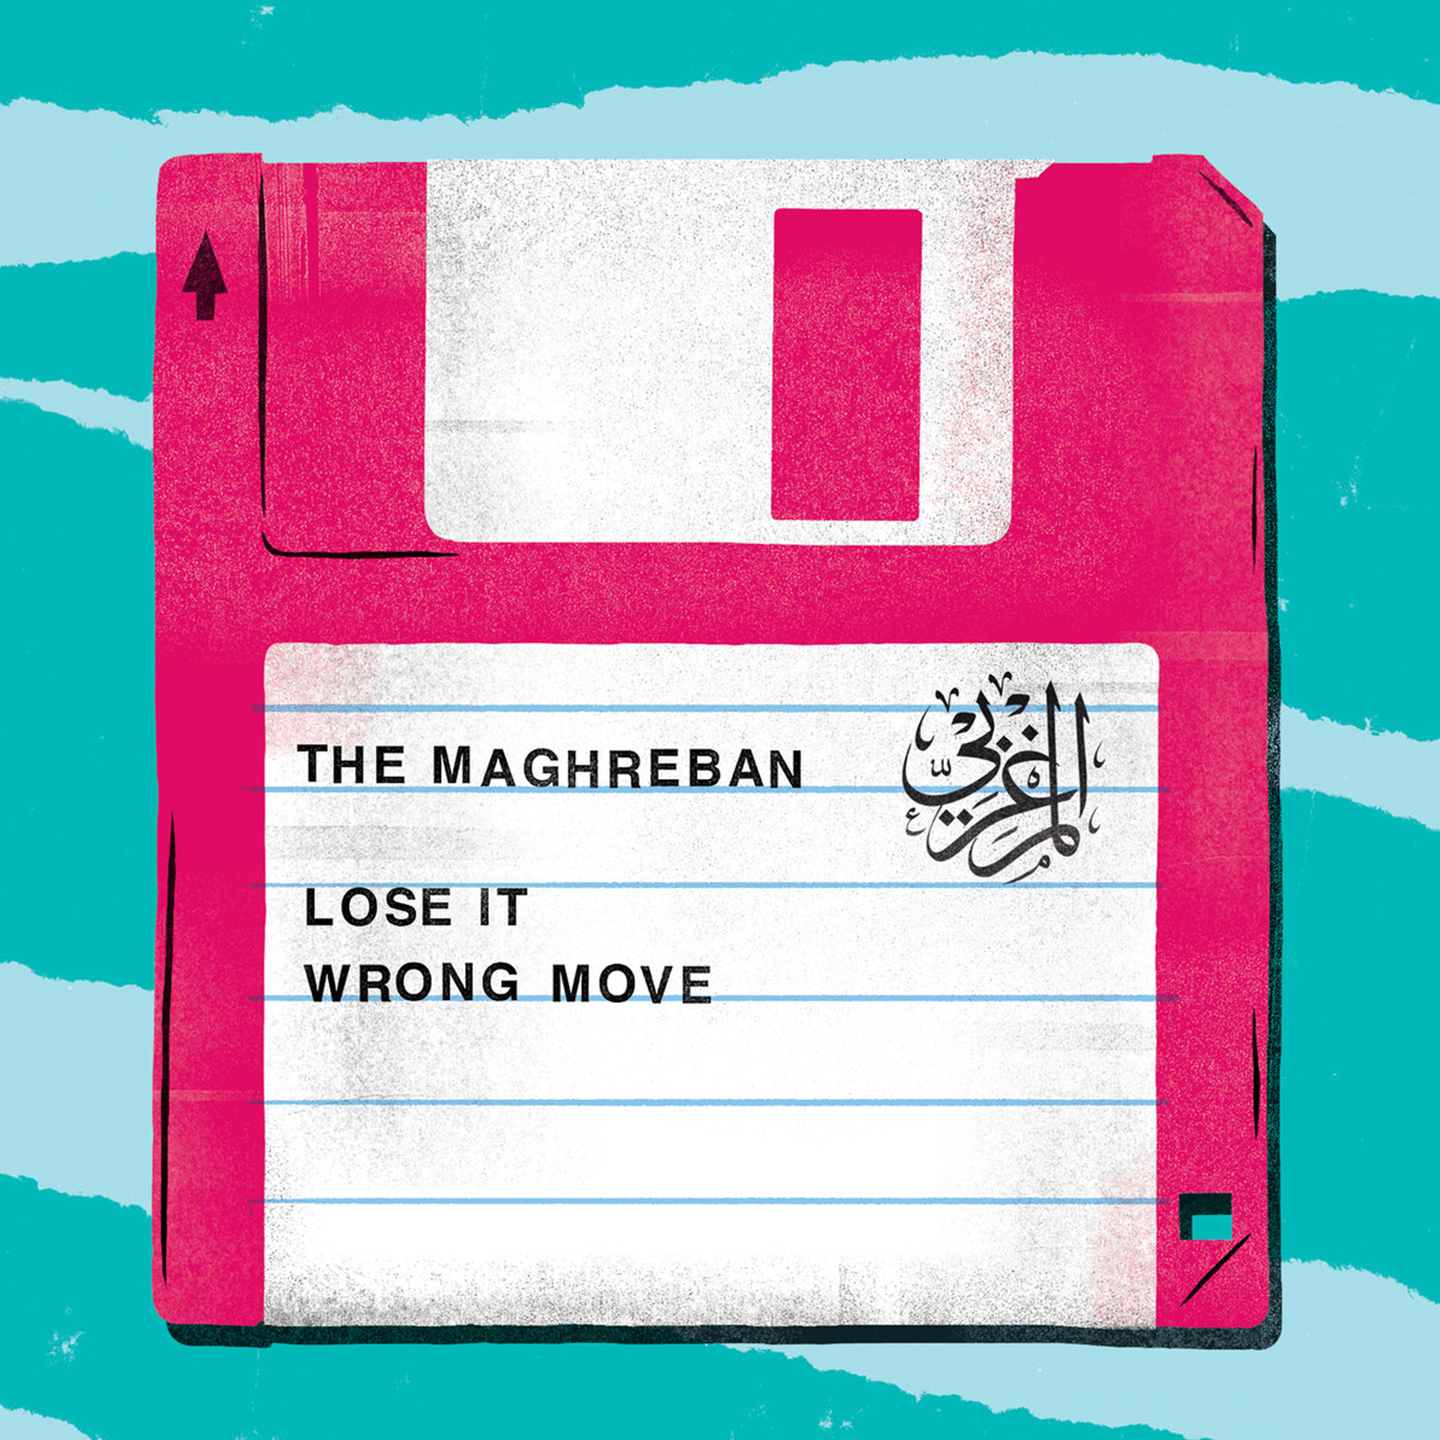 The Maghreban - Lose It